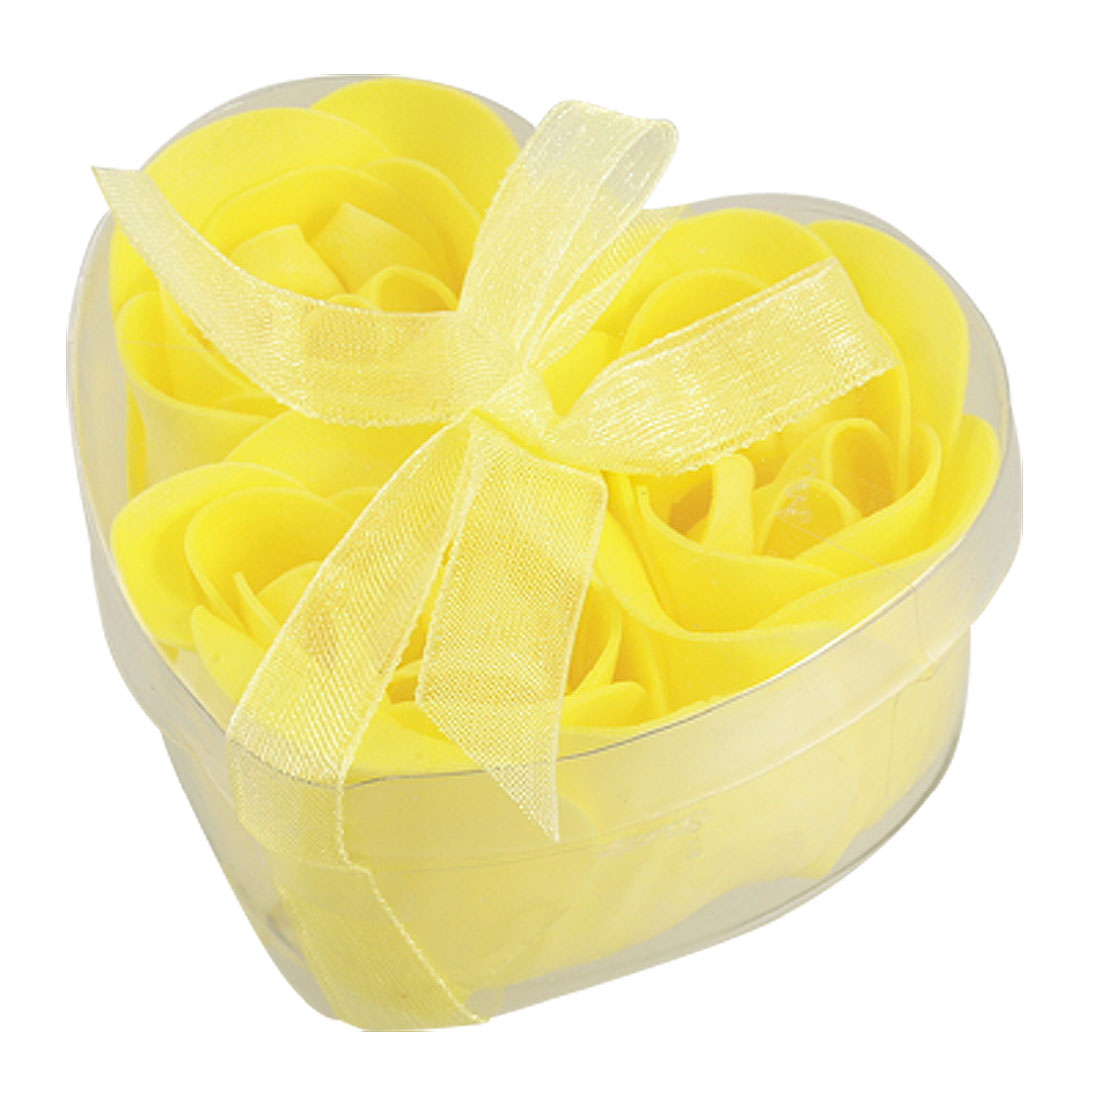 3 Pcs Yellow Scented Rose Flower Petal in Heart Gift Case